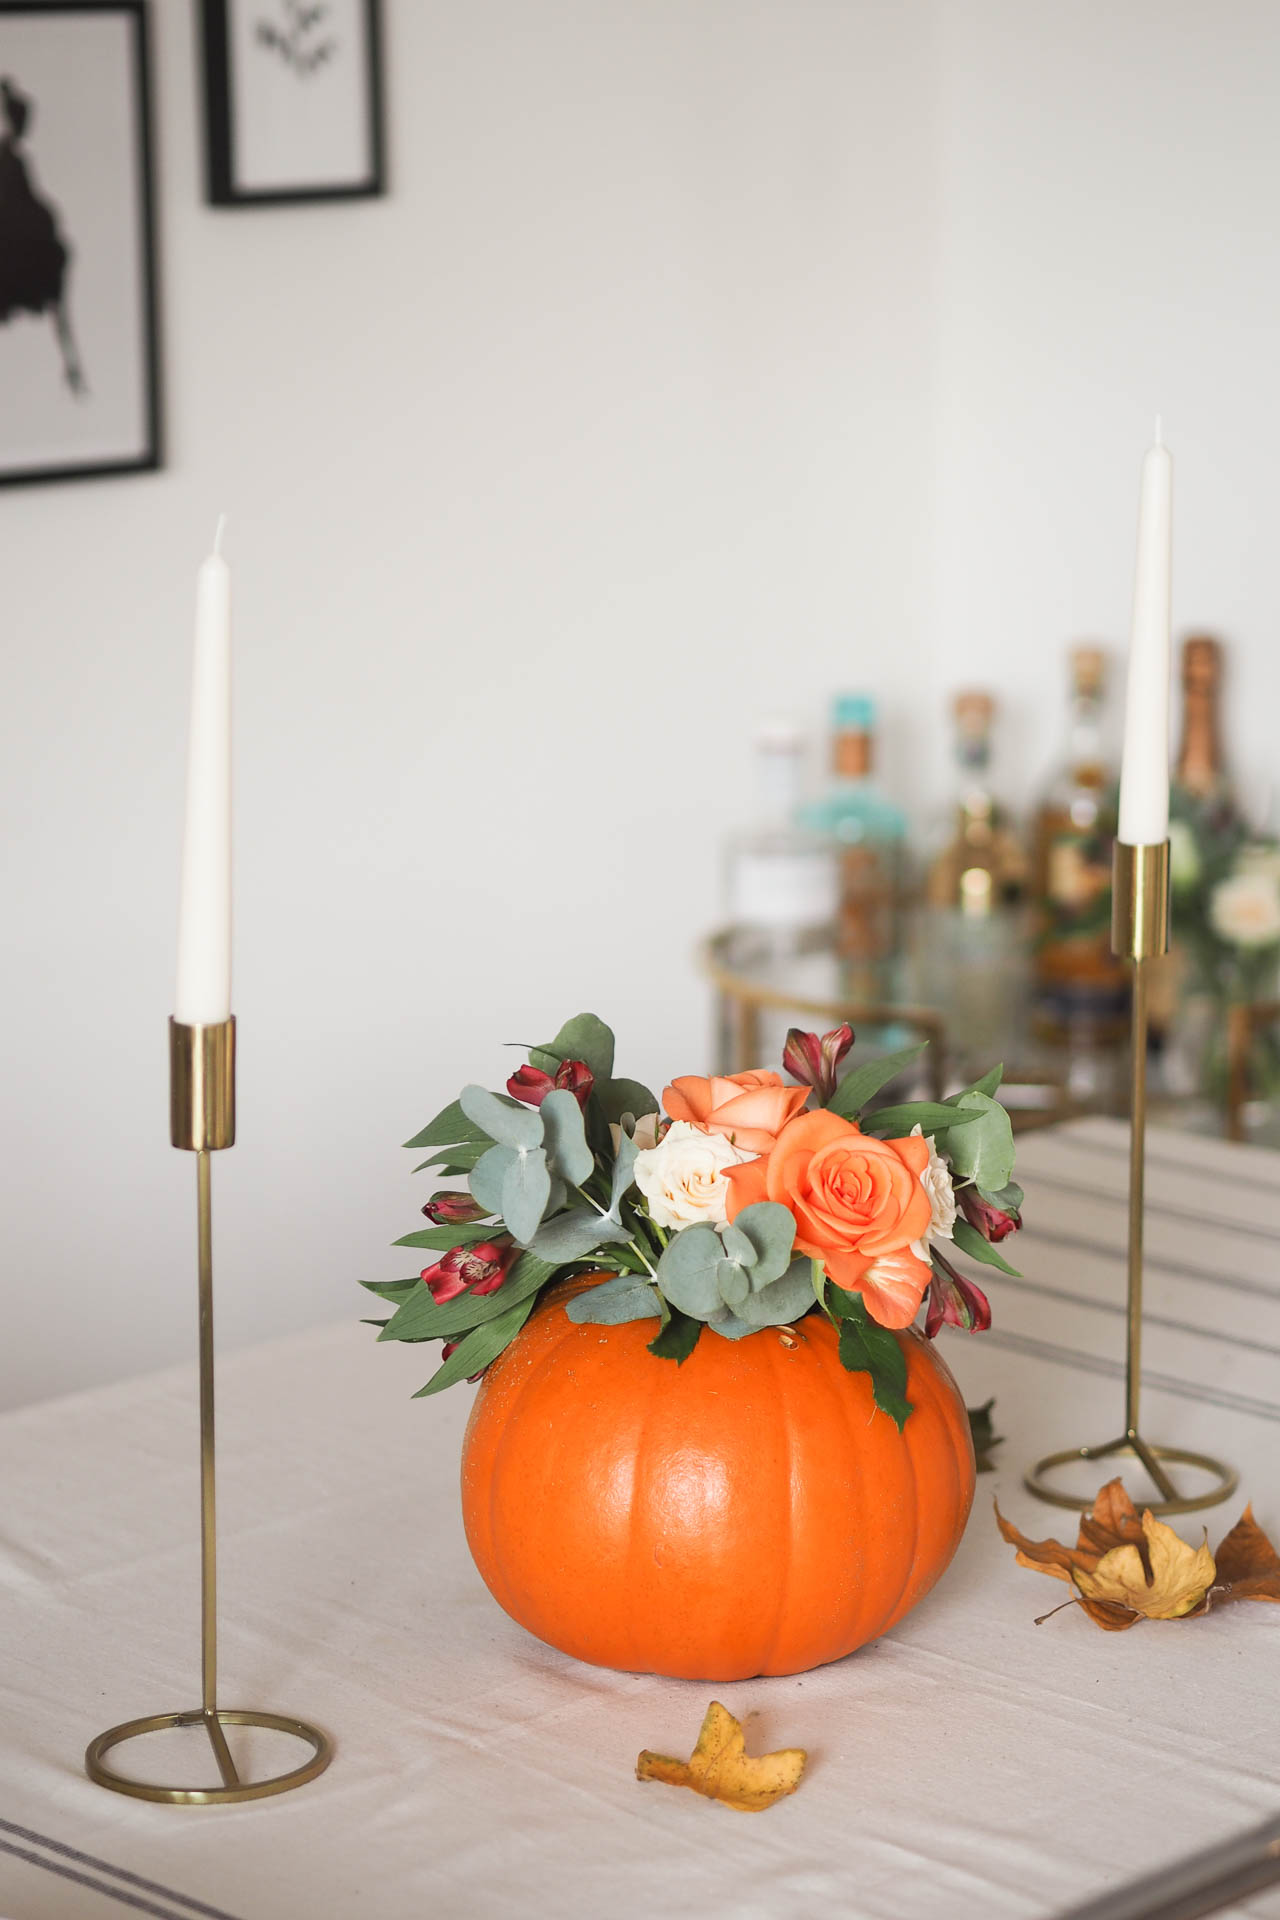 DIY Pumpkin floral arrangement